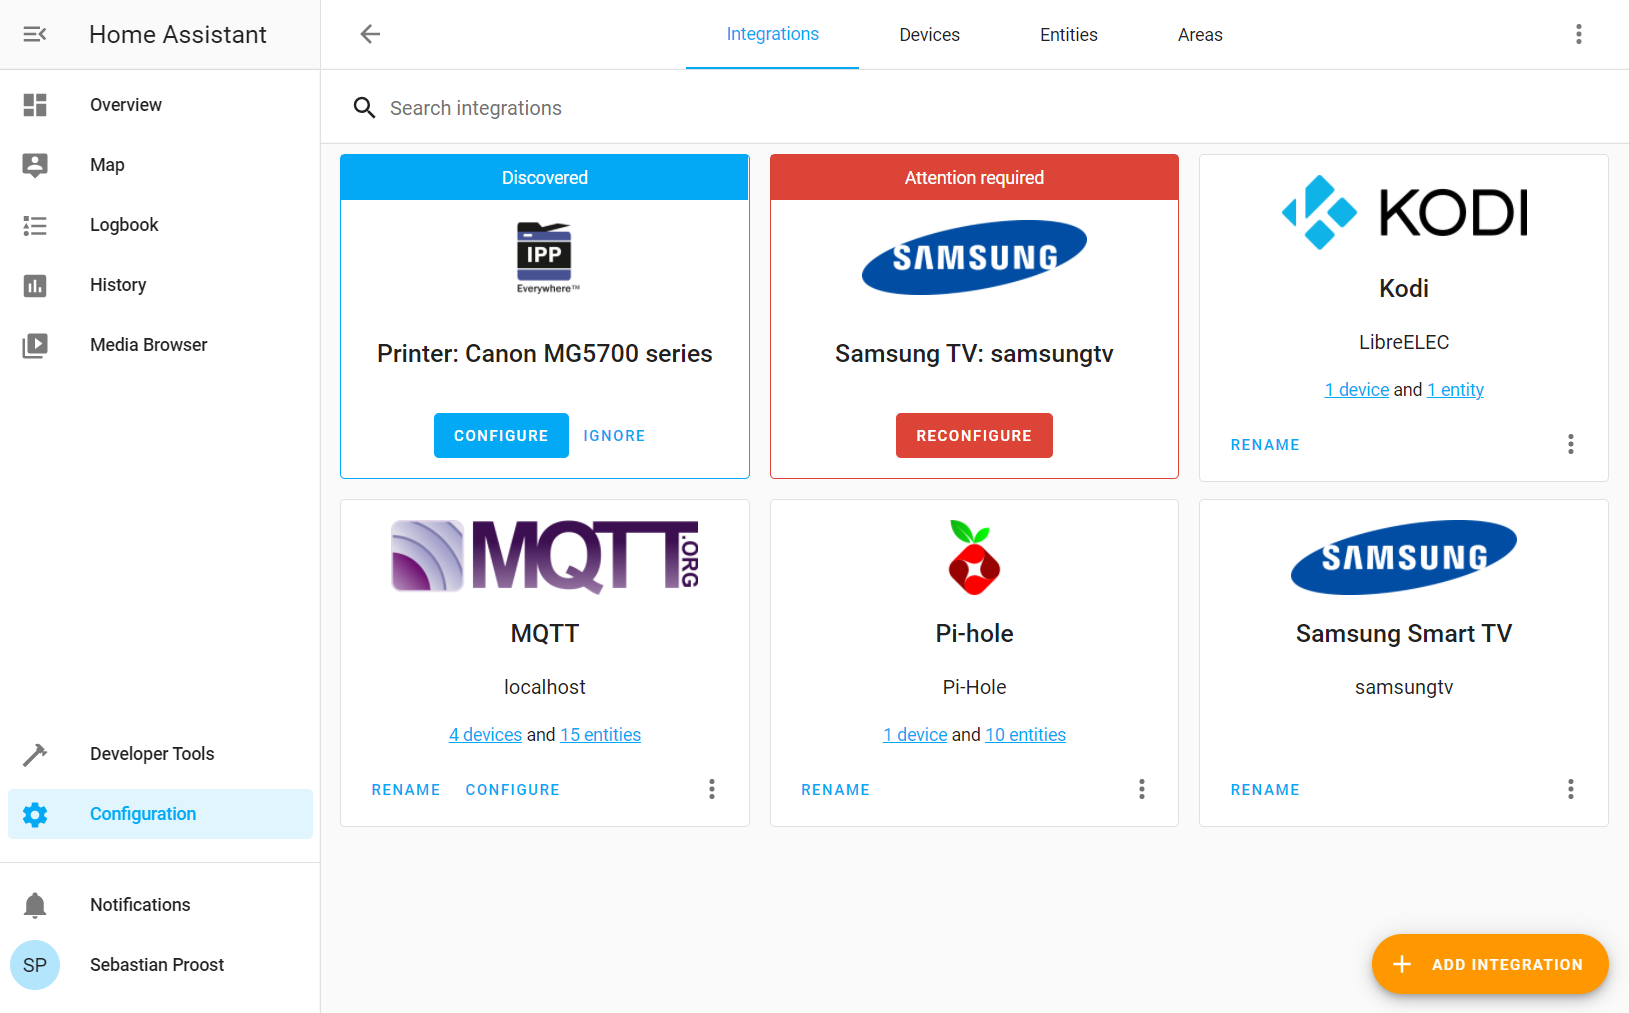 Integrations page shows that there are now 4 MQTT devices available, two from the previous post and two new ones